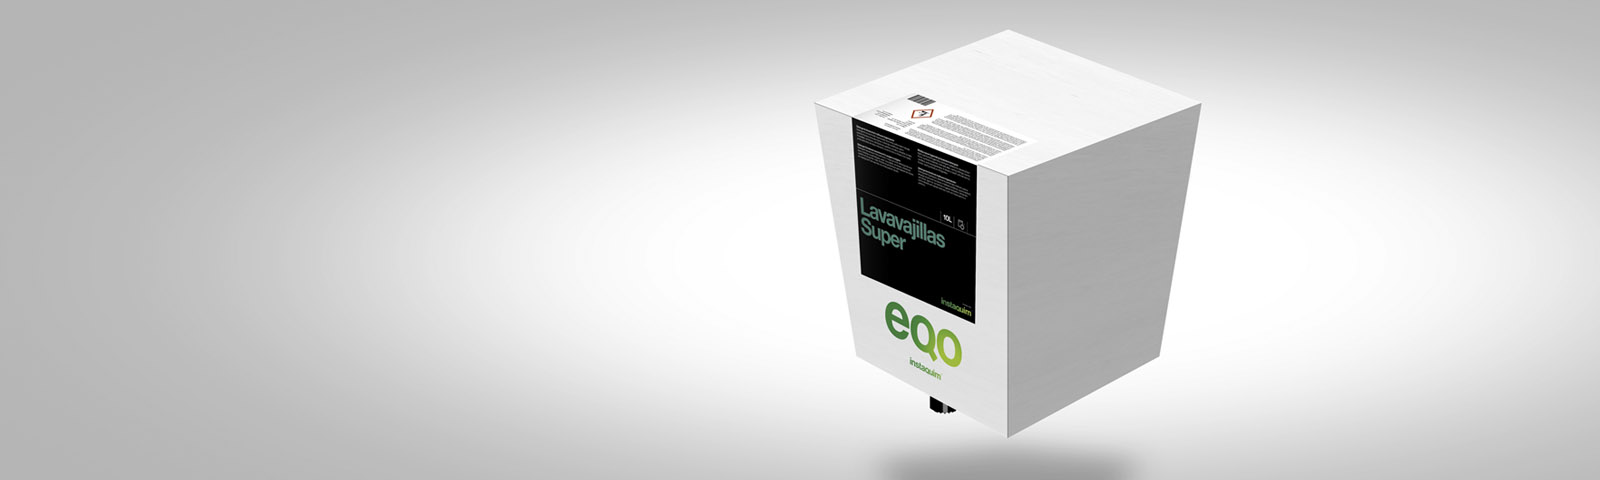 Eqo Bag in box